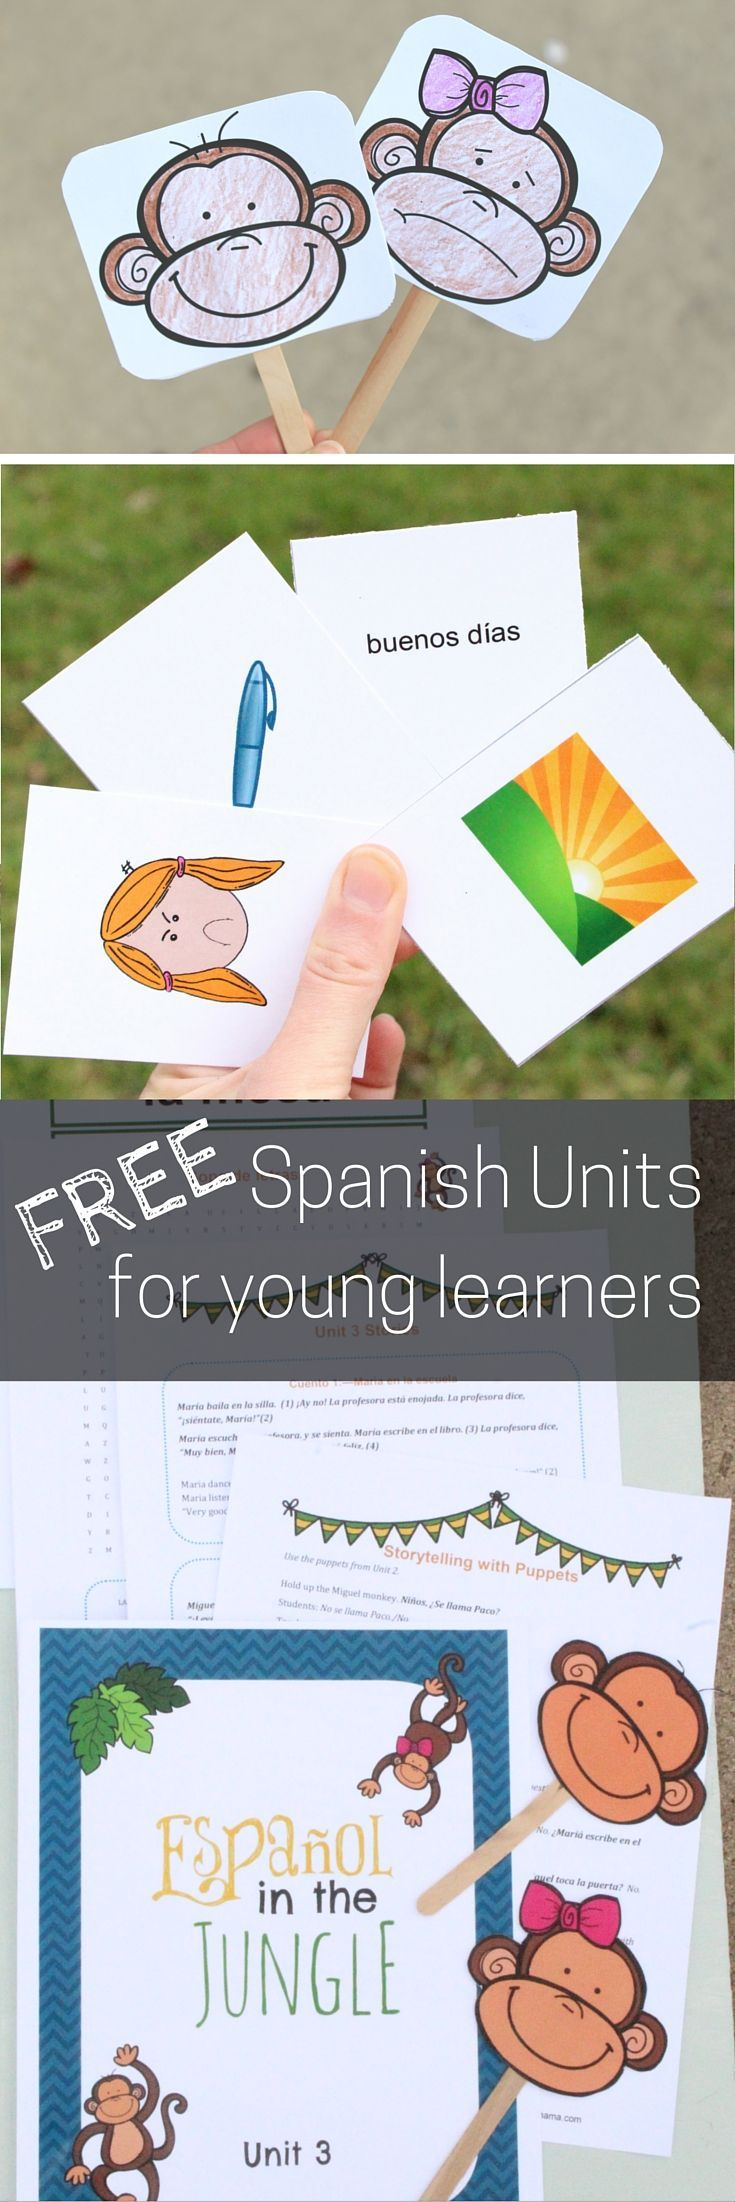 Free Spanish Units you can download! There are currently three available, and start at the very beginning, with games, activities, printables, and more. Best for early elementary.